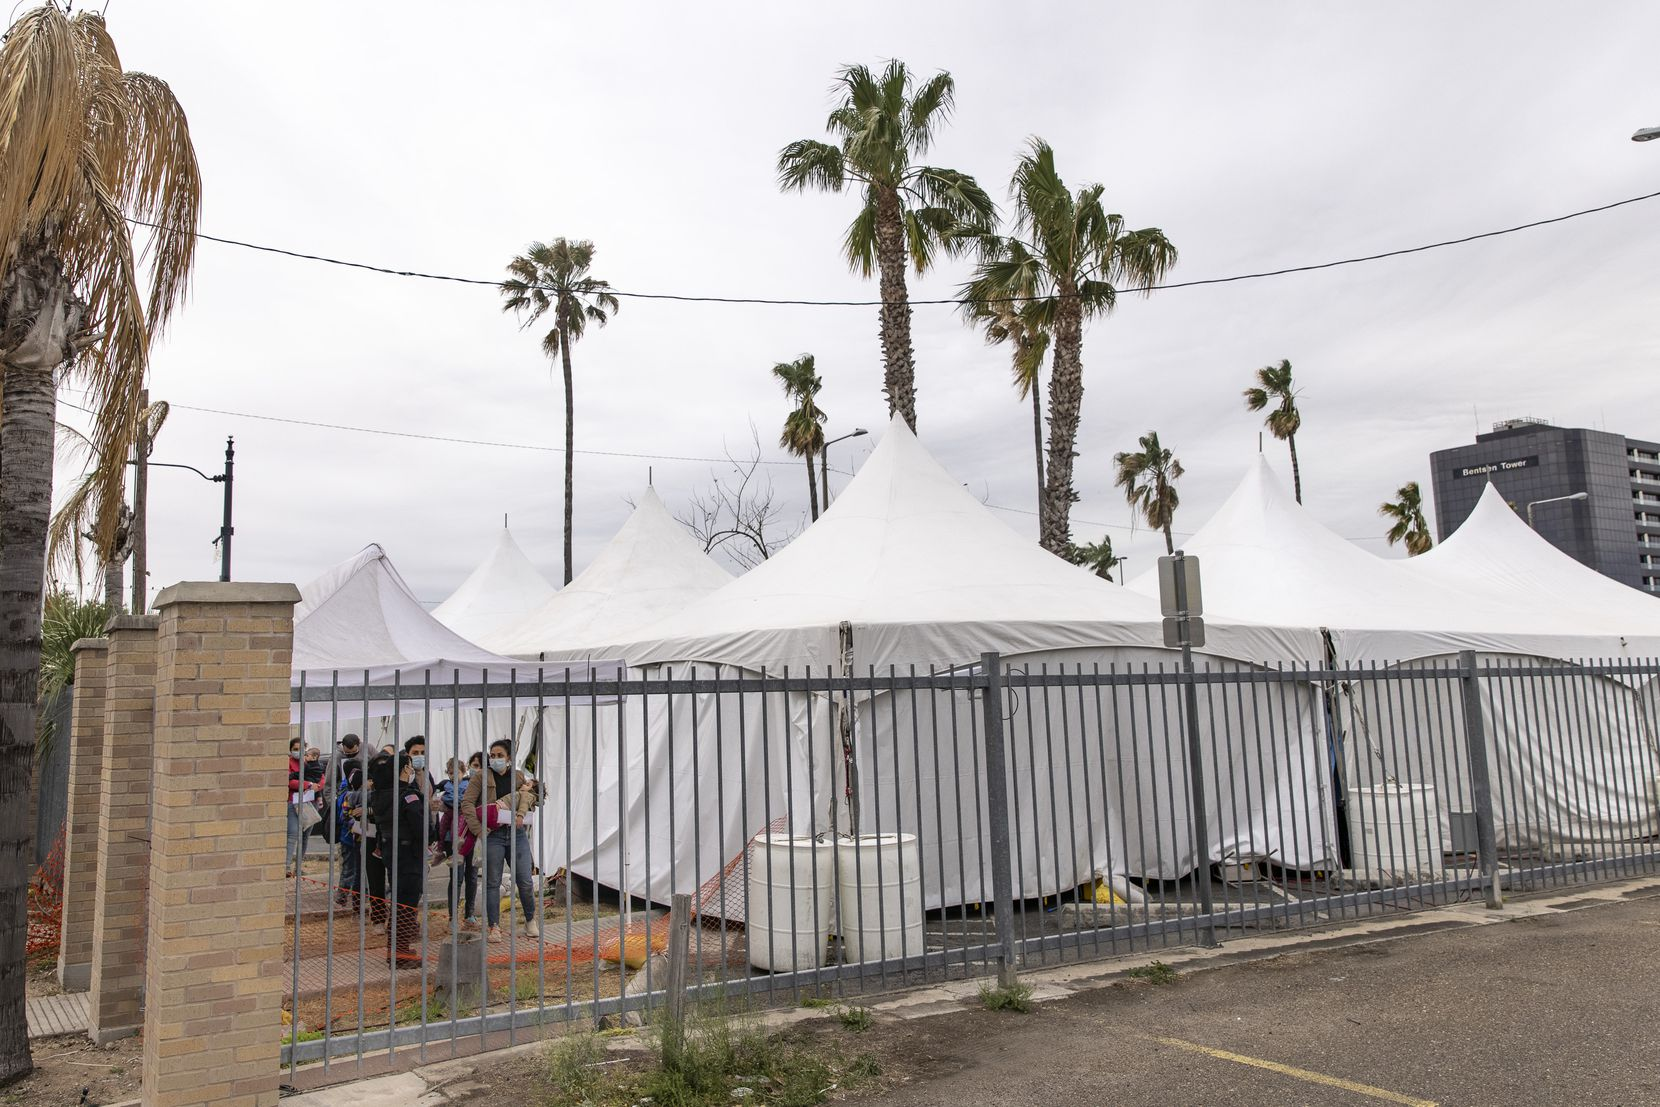 Migrant families with small children wait in line to be tested for COVID-19 at a tent facility set up across the bus station in downtown McAllen, Texas, on Sunday, March 28, 2021. These families were then transported to the nearby respite center operated by Catholic Charities.